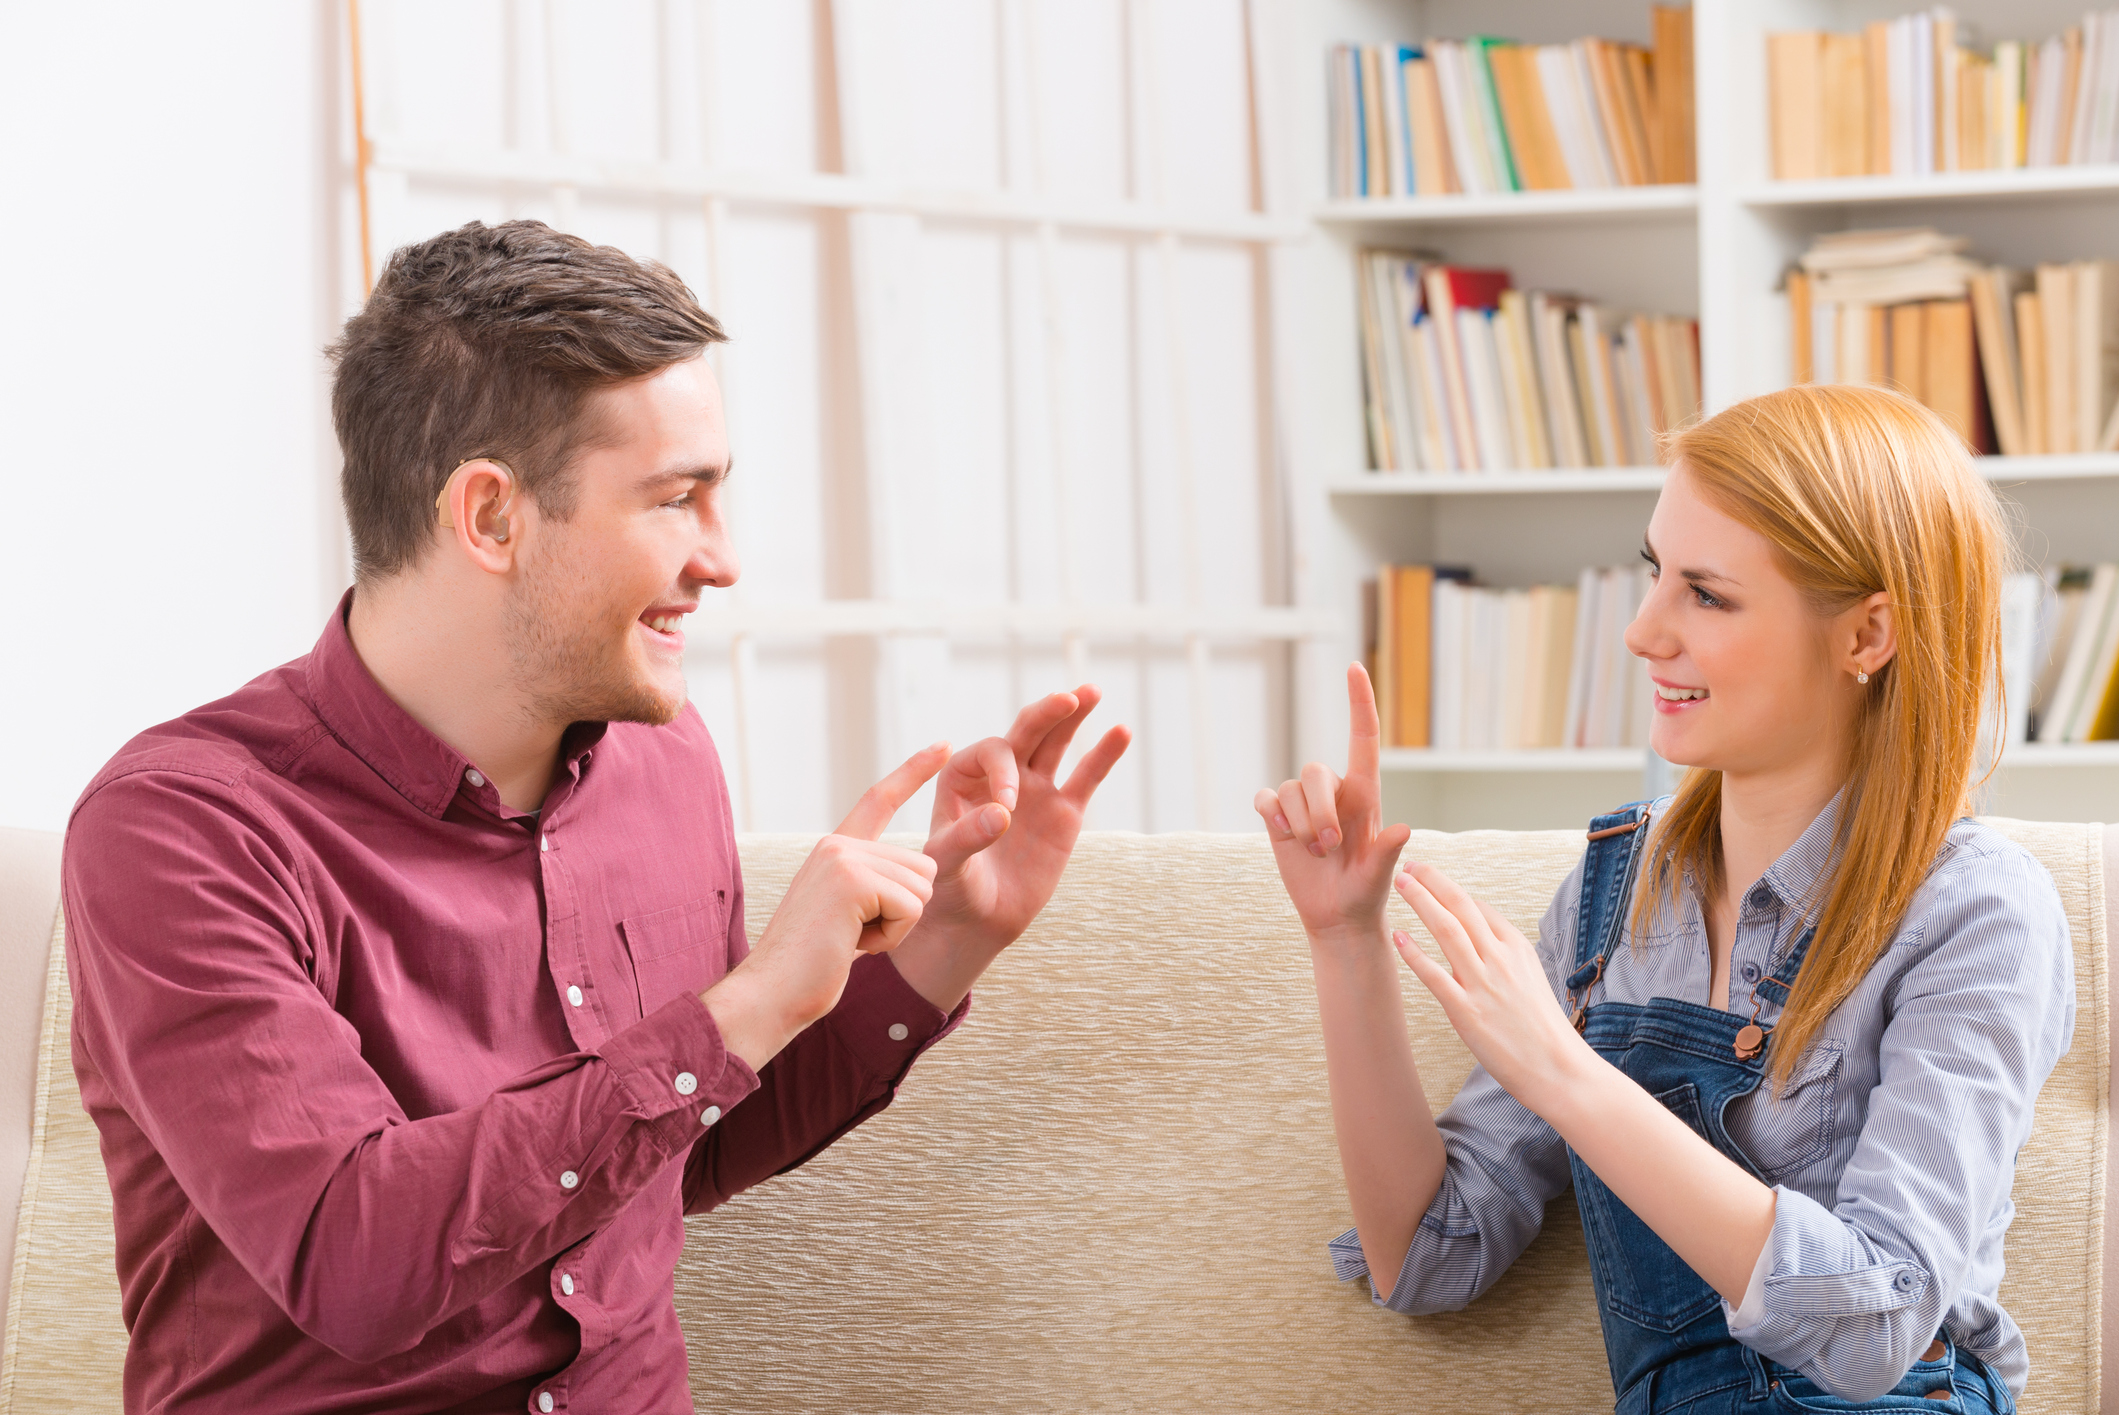 Expanding communication - Tips for communication partners who are using AAC to expand communication with a partner.